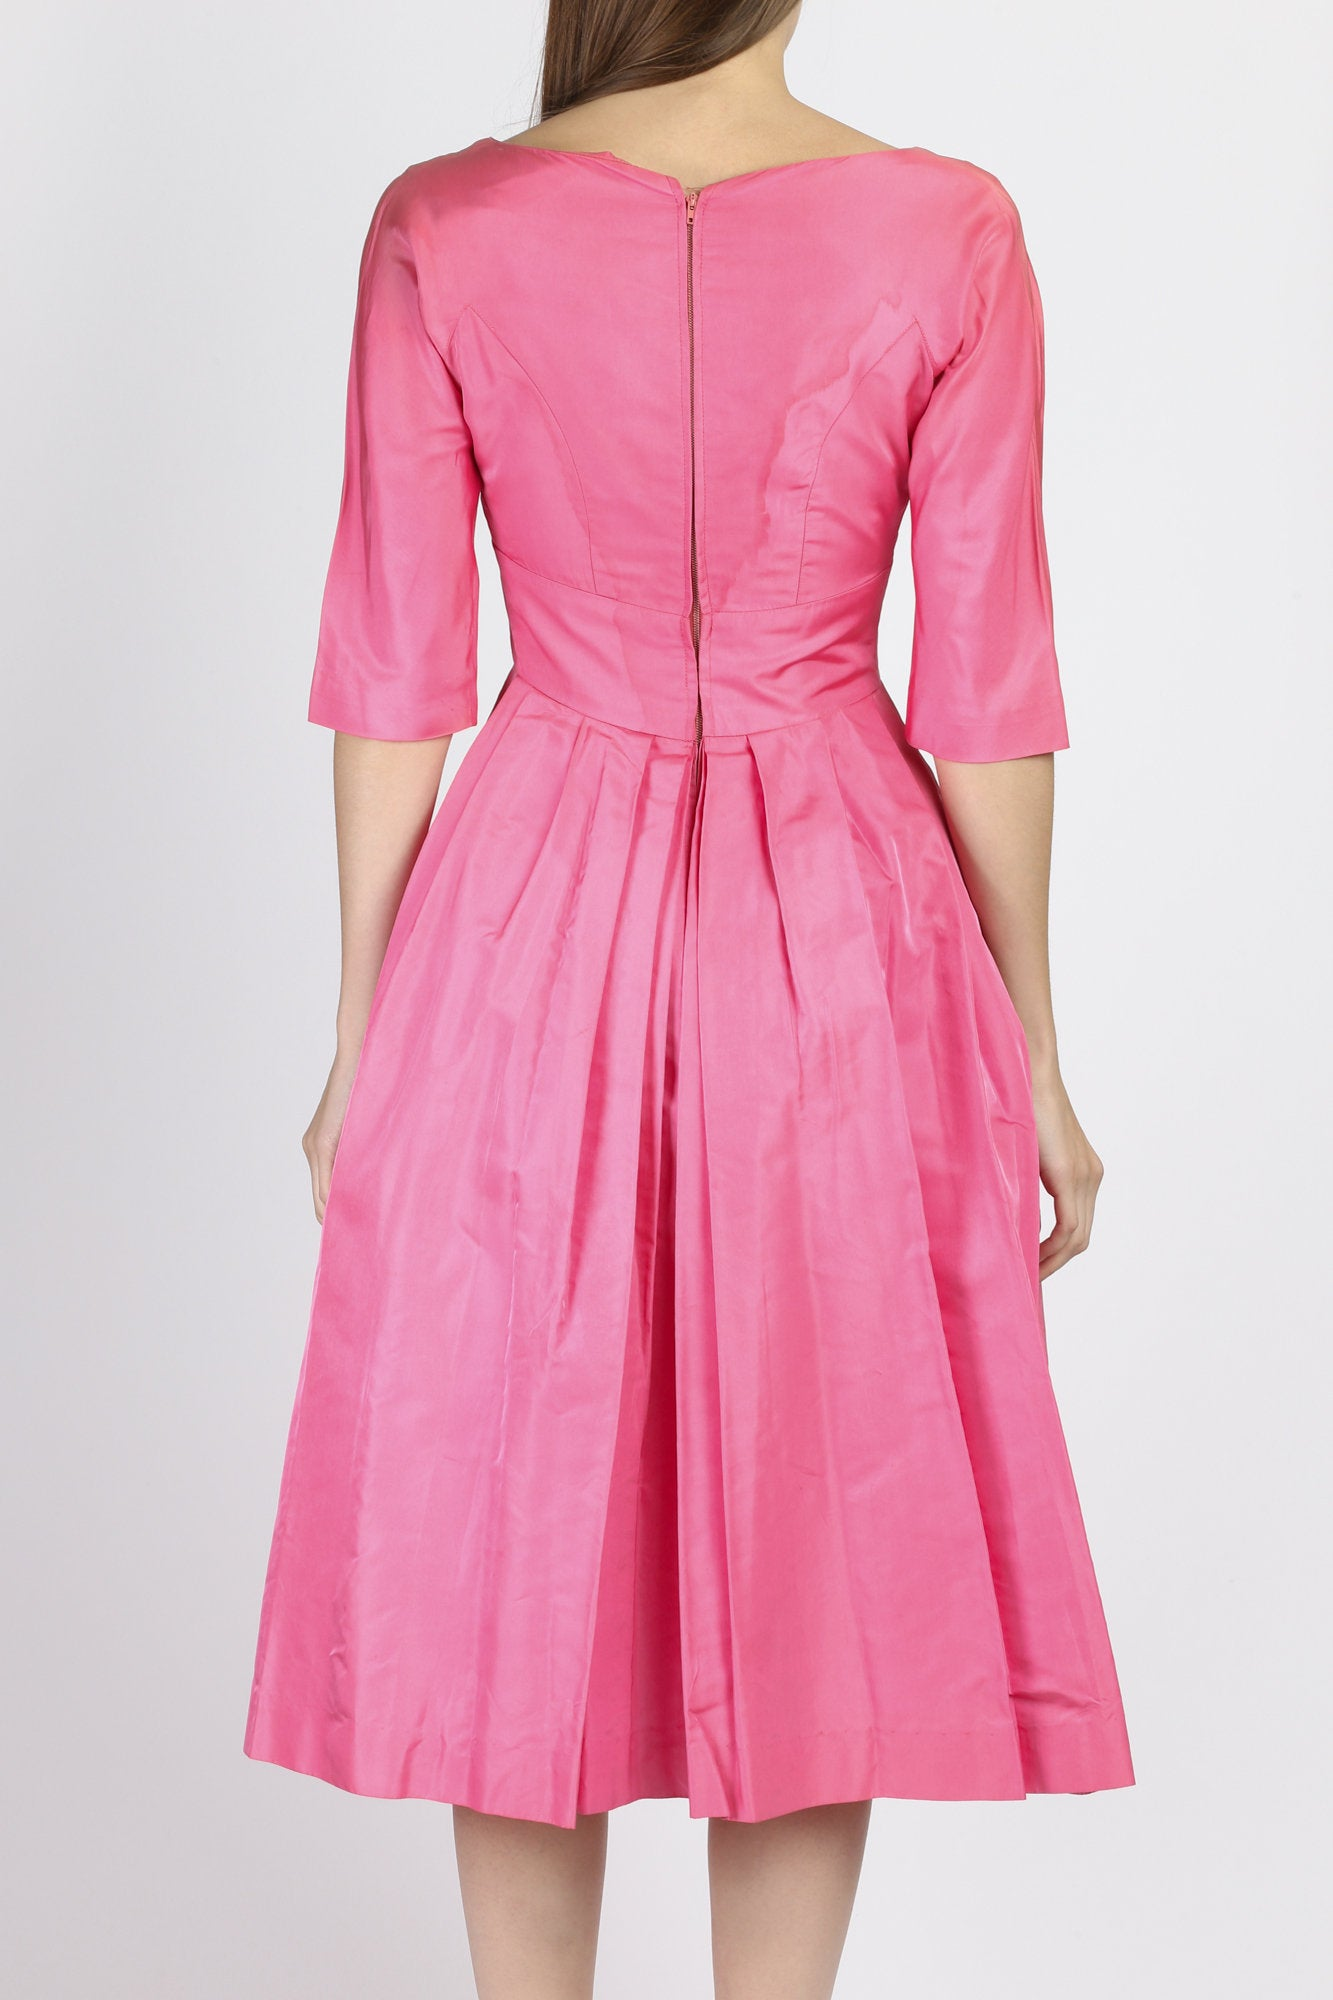 Vintage 1950s Pink Bow Party Dress - Extra Small